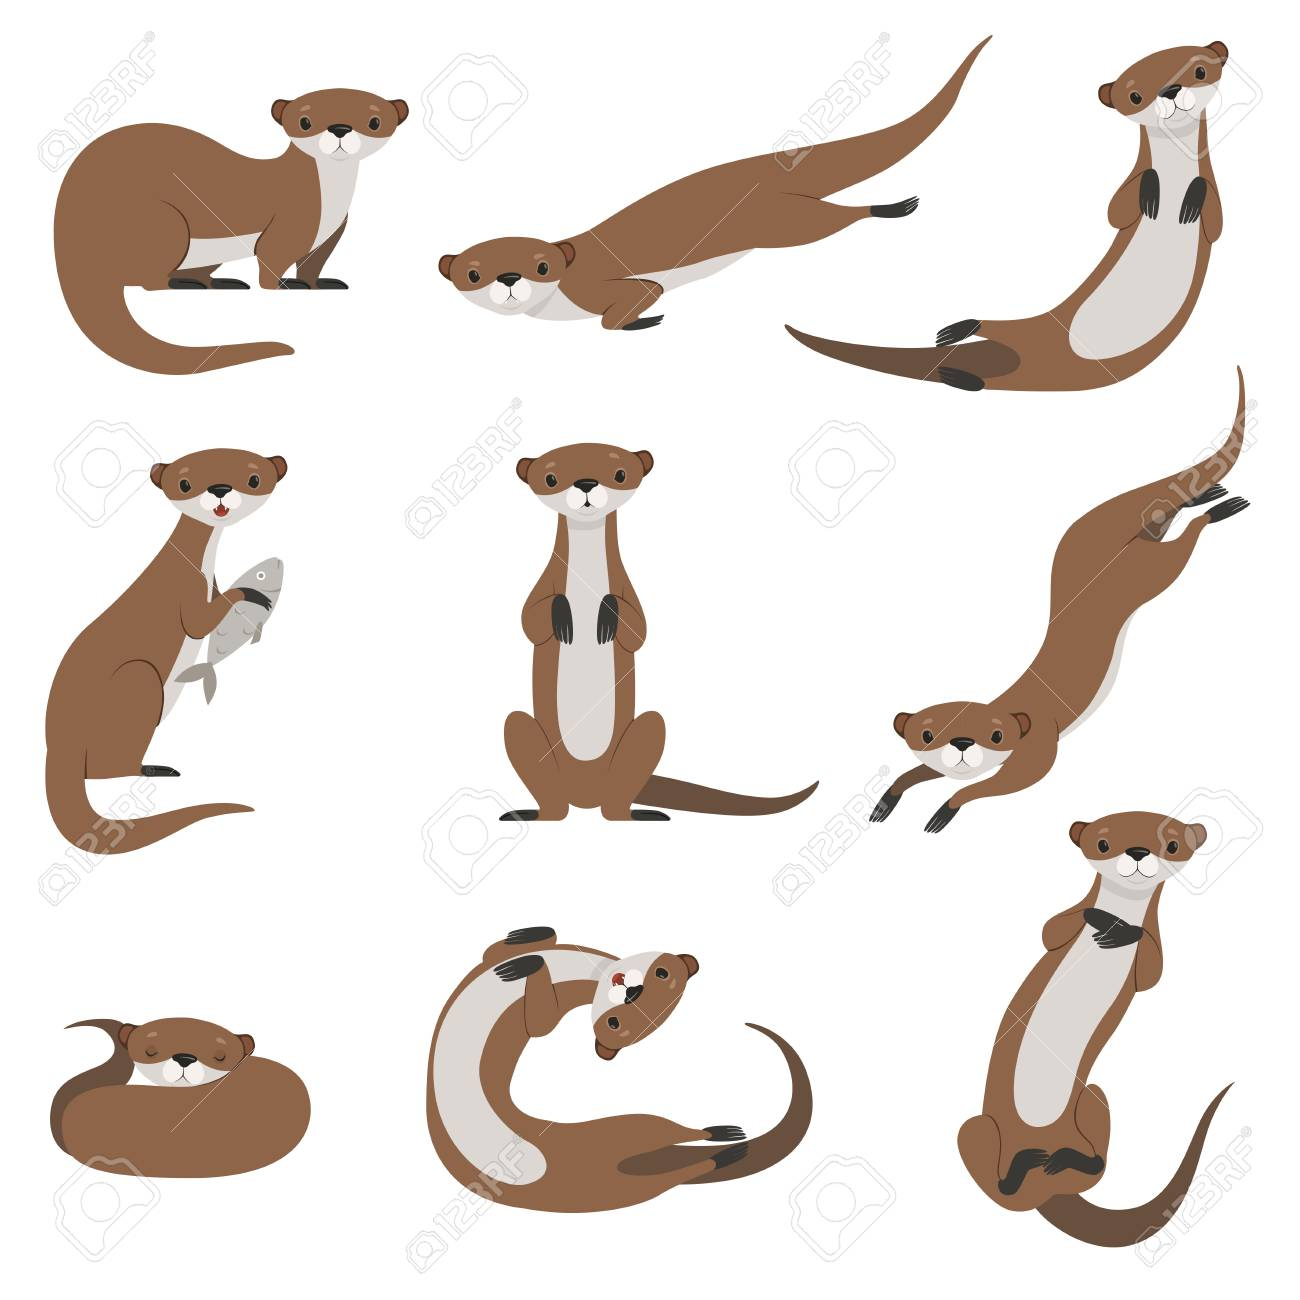 Cute otter set, funny animal character in various poses vector Illustration isolated on a white background. - 111655216